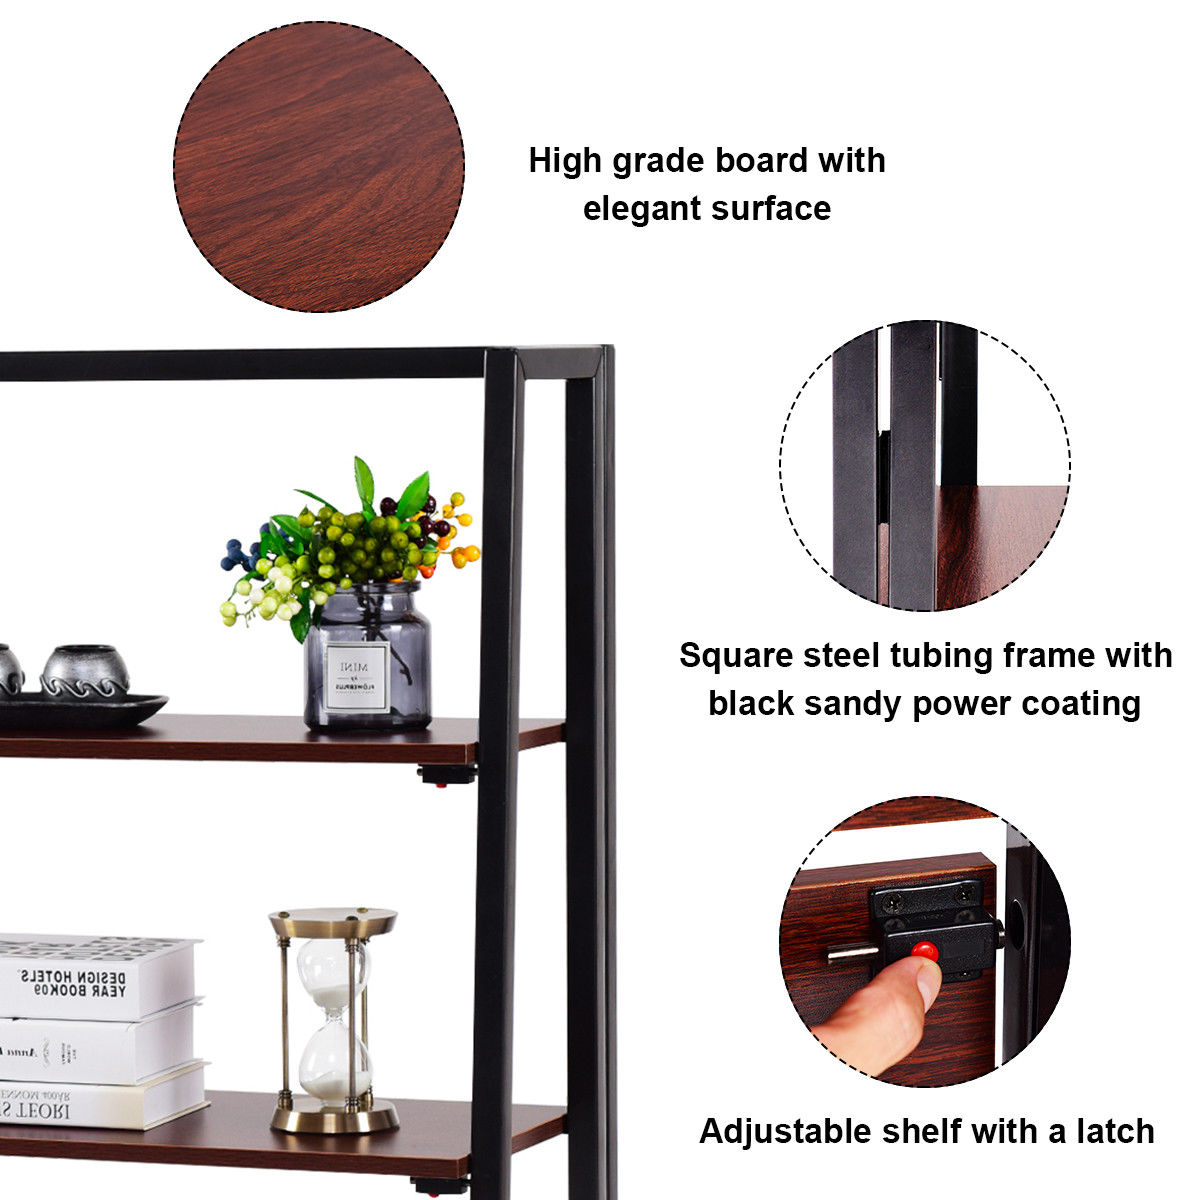 Gymax 3 Tier Folding Ladder Bookcase Multifunctional Plant Flower Display Stand Shelf - image 4 of 10